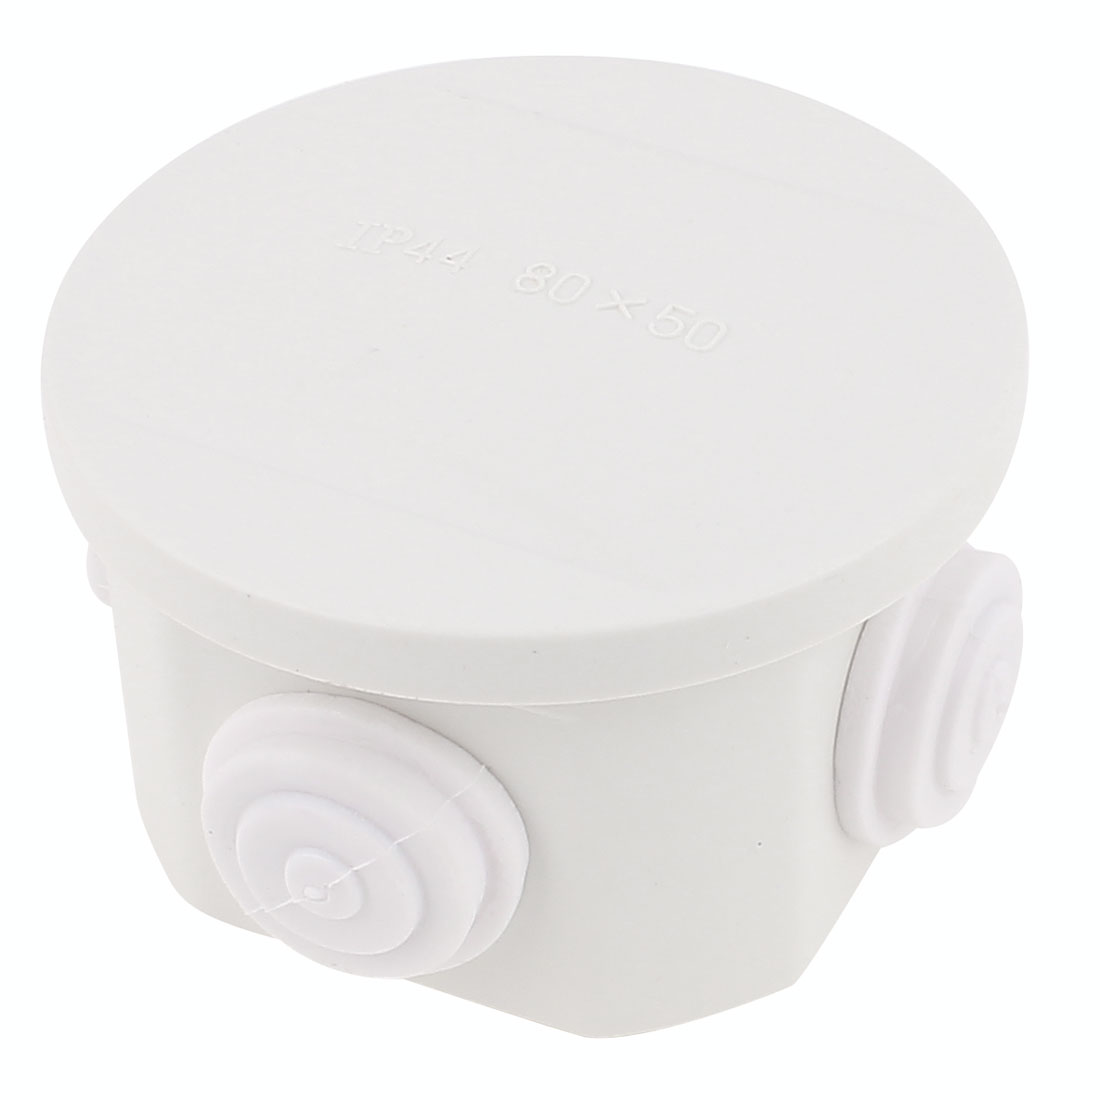 White ABS 4 Cable Entries Dustproof IP44 Enclosure Round Junction Box 80 x 50mm